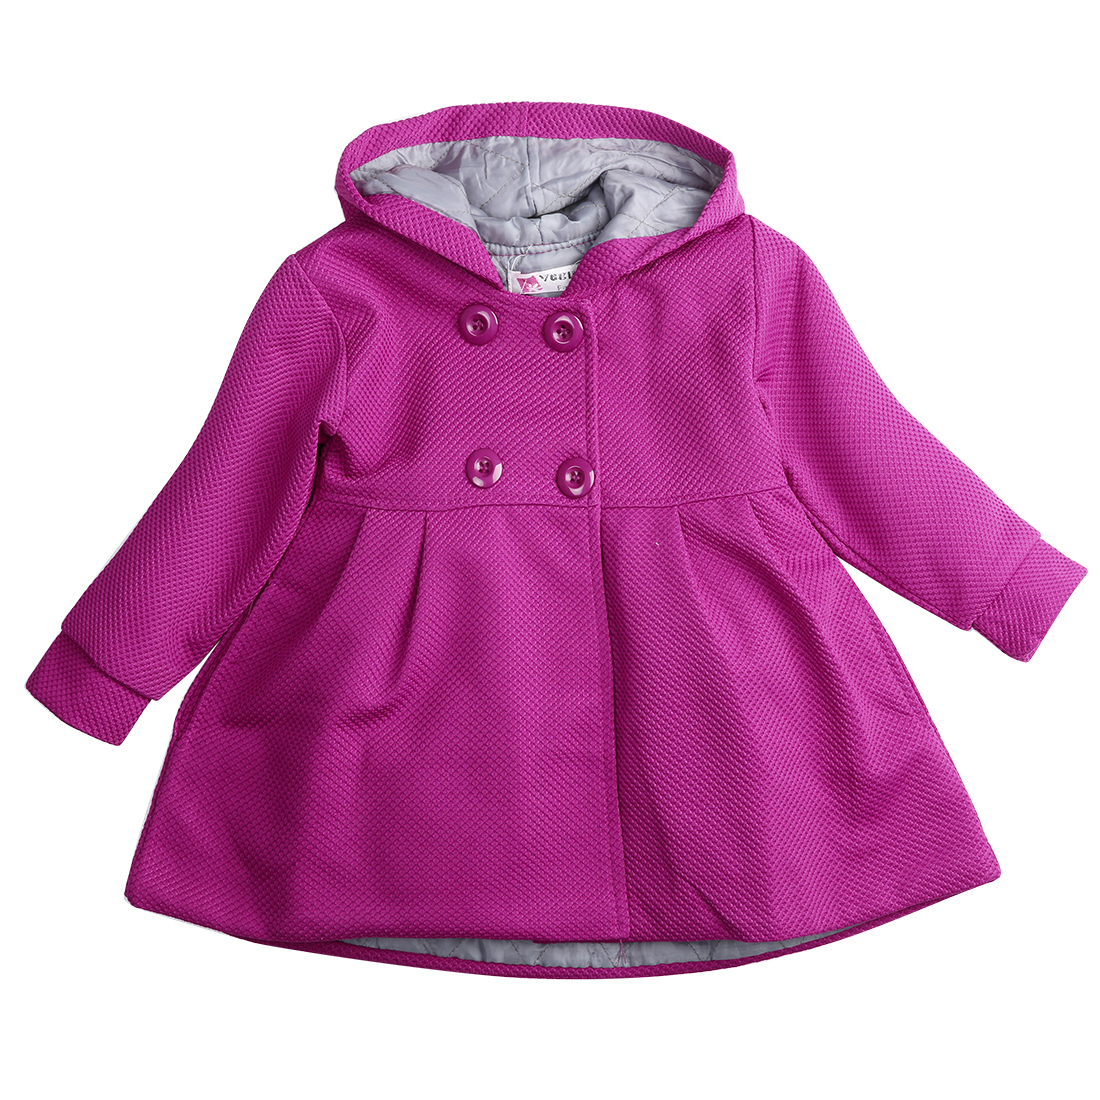 Girls Coats. Cozy up to style! Shop for girls' coats and jackets plus more outerwear at Macy's. Bundle up your little one with girls' coats and girls' jackets from top brands including Ideology, adidas, The North Face, Hello Kitty, Disney and many more. Looking for girls' .